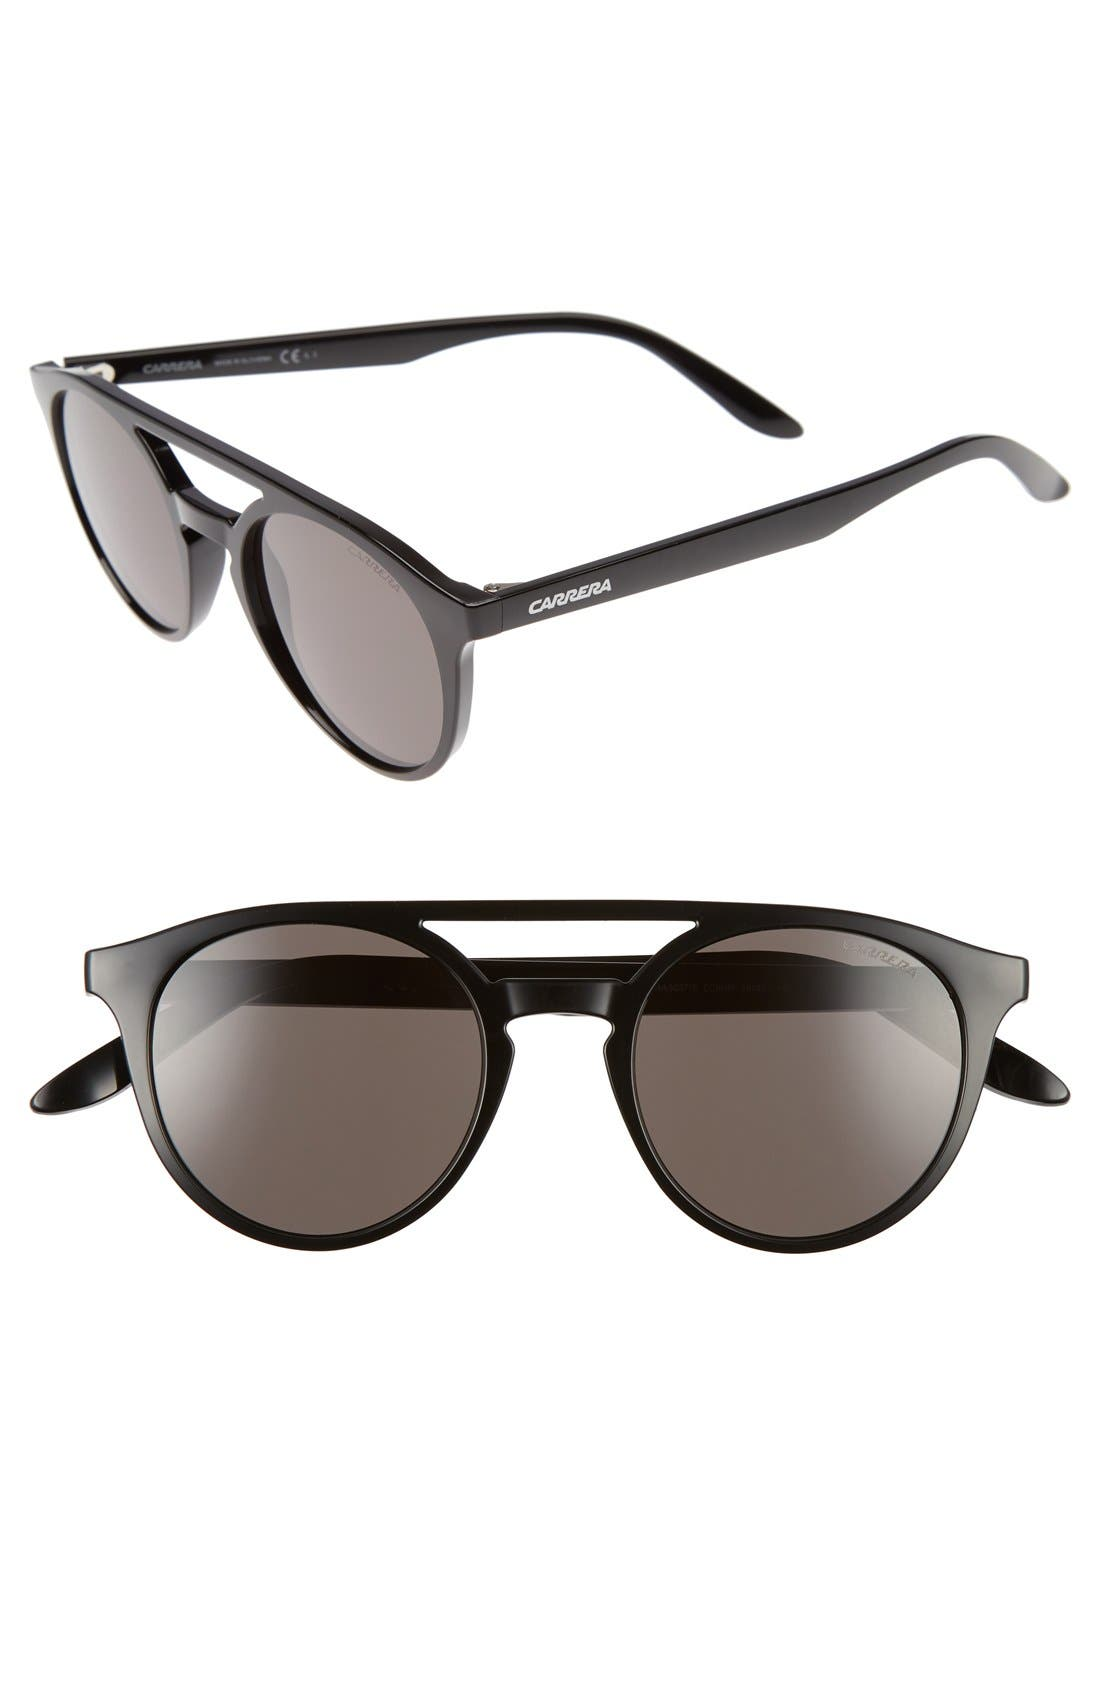 Main Image - Carrera Eyewear 49mm Round Sunglasses